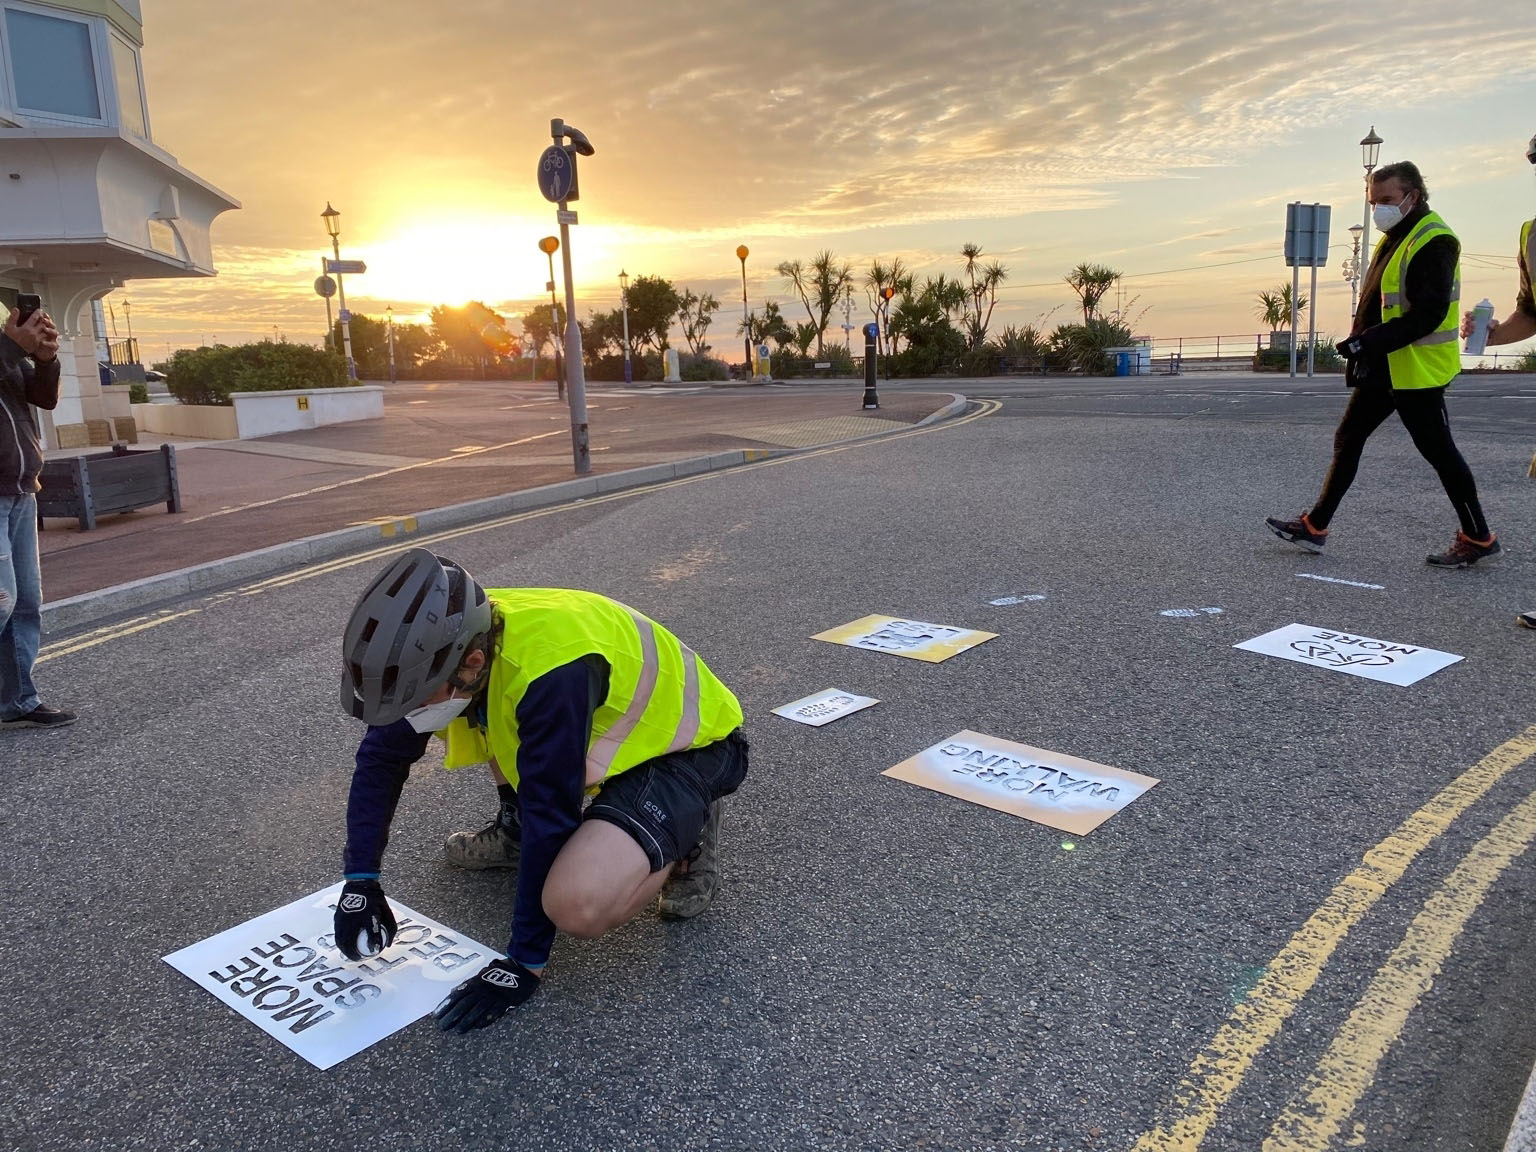 Greenpeace volunteers in fluorescent jackets apply stencils to a road surface, with a beautiful dawn sky in the background.